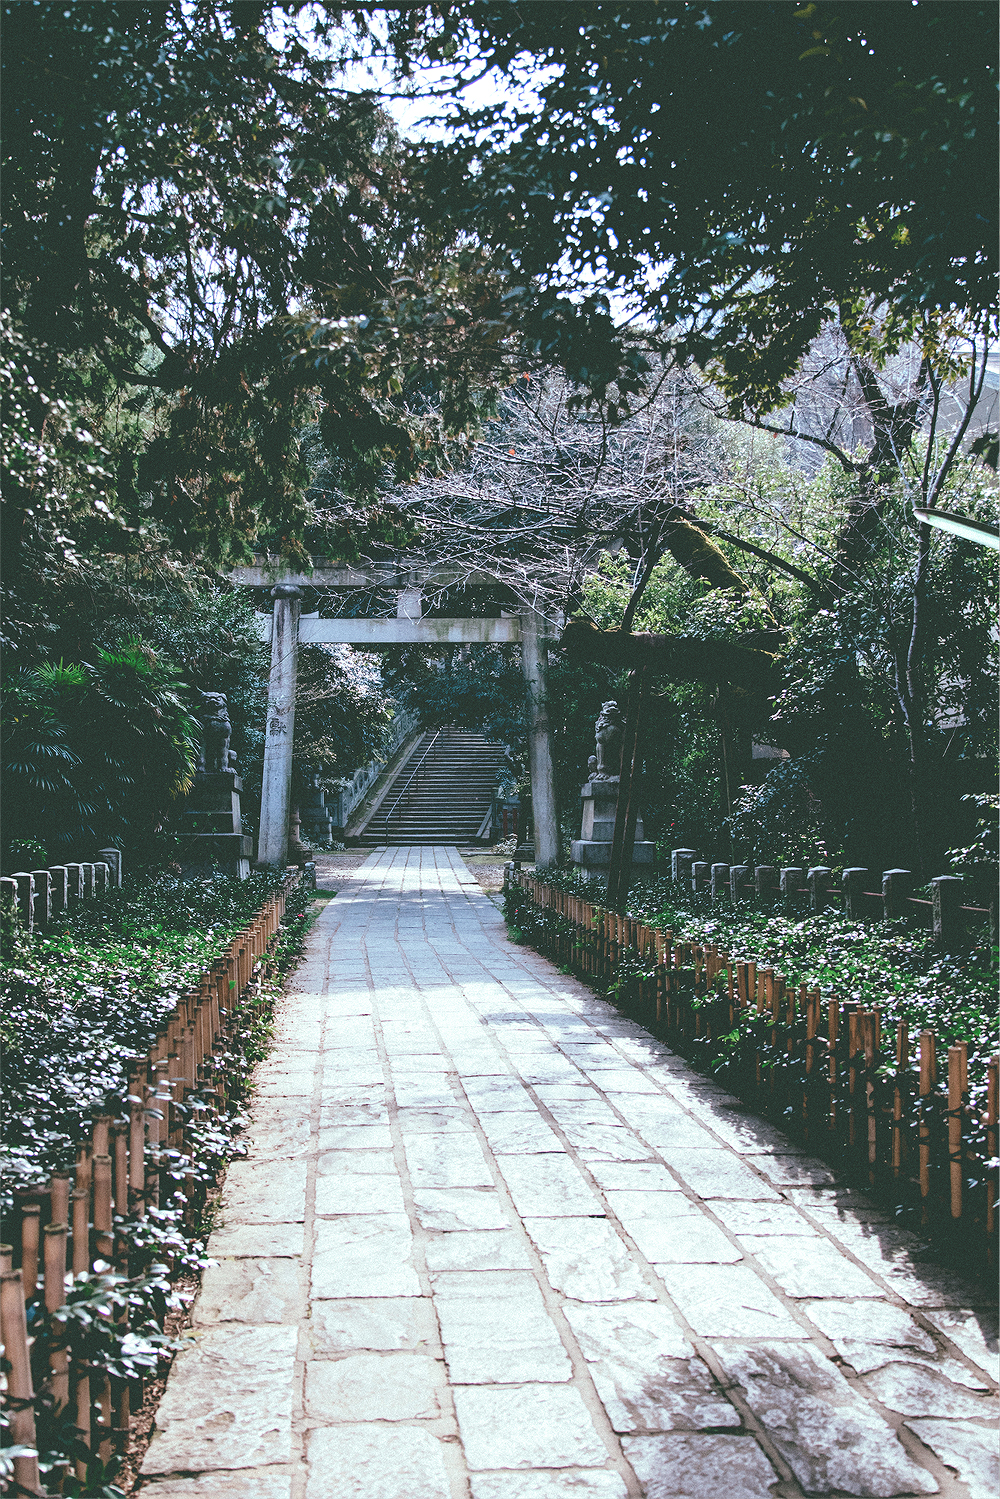 It should've taken us twenty minutes at most to get to the Hikawa Shrine, but it dragged on for an hour (after we took an alternative route!)